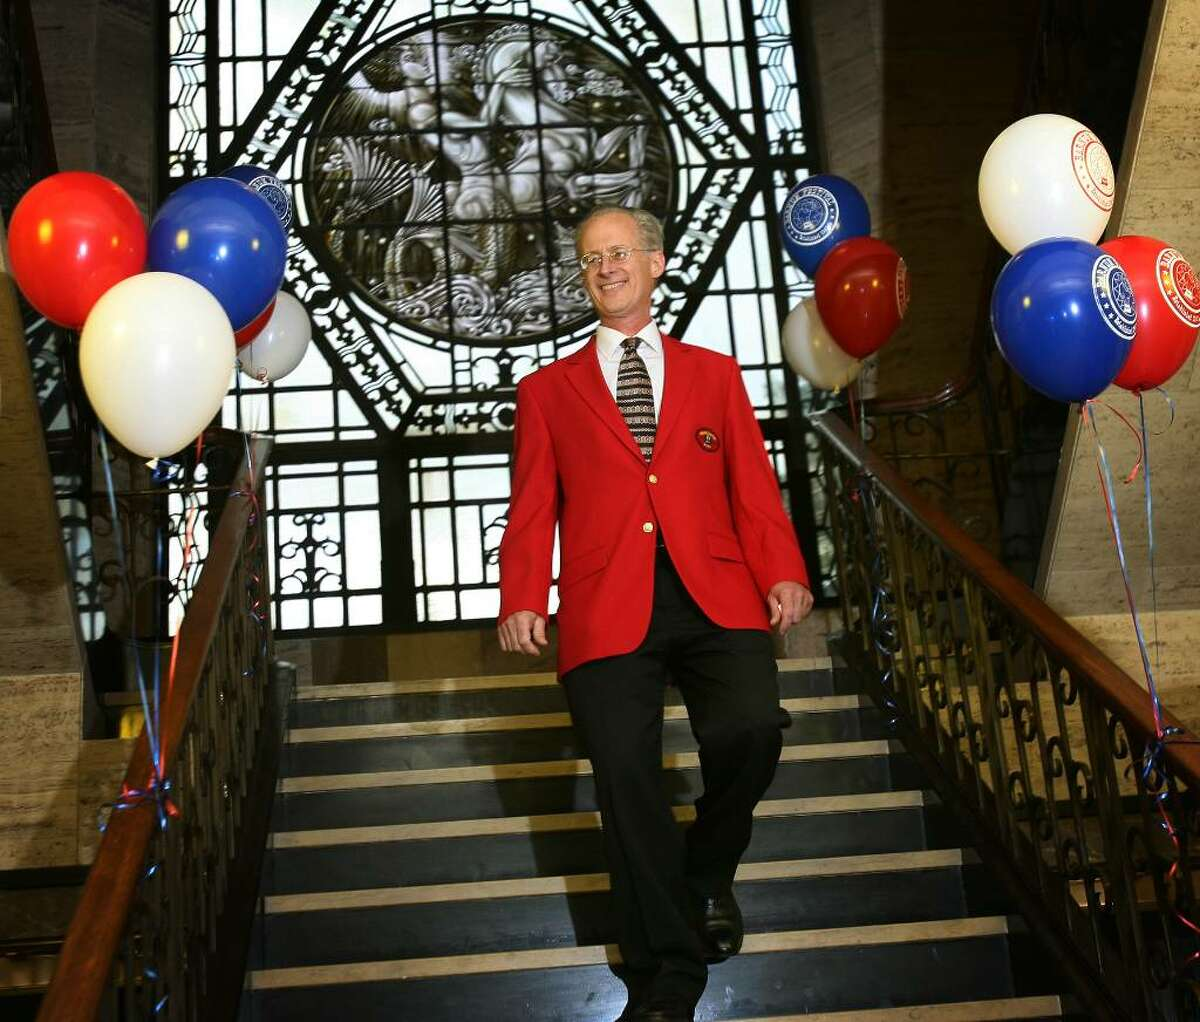 Tom Santa is introduced as 2010 Barnum Festival ringmaster during a reception at Aquarion Water Co. offices in downtown Bridgeport on Wednesday, September 16, 2009.